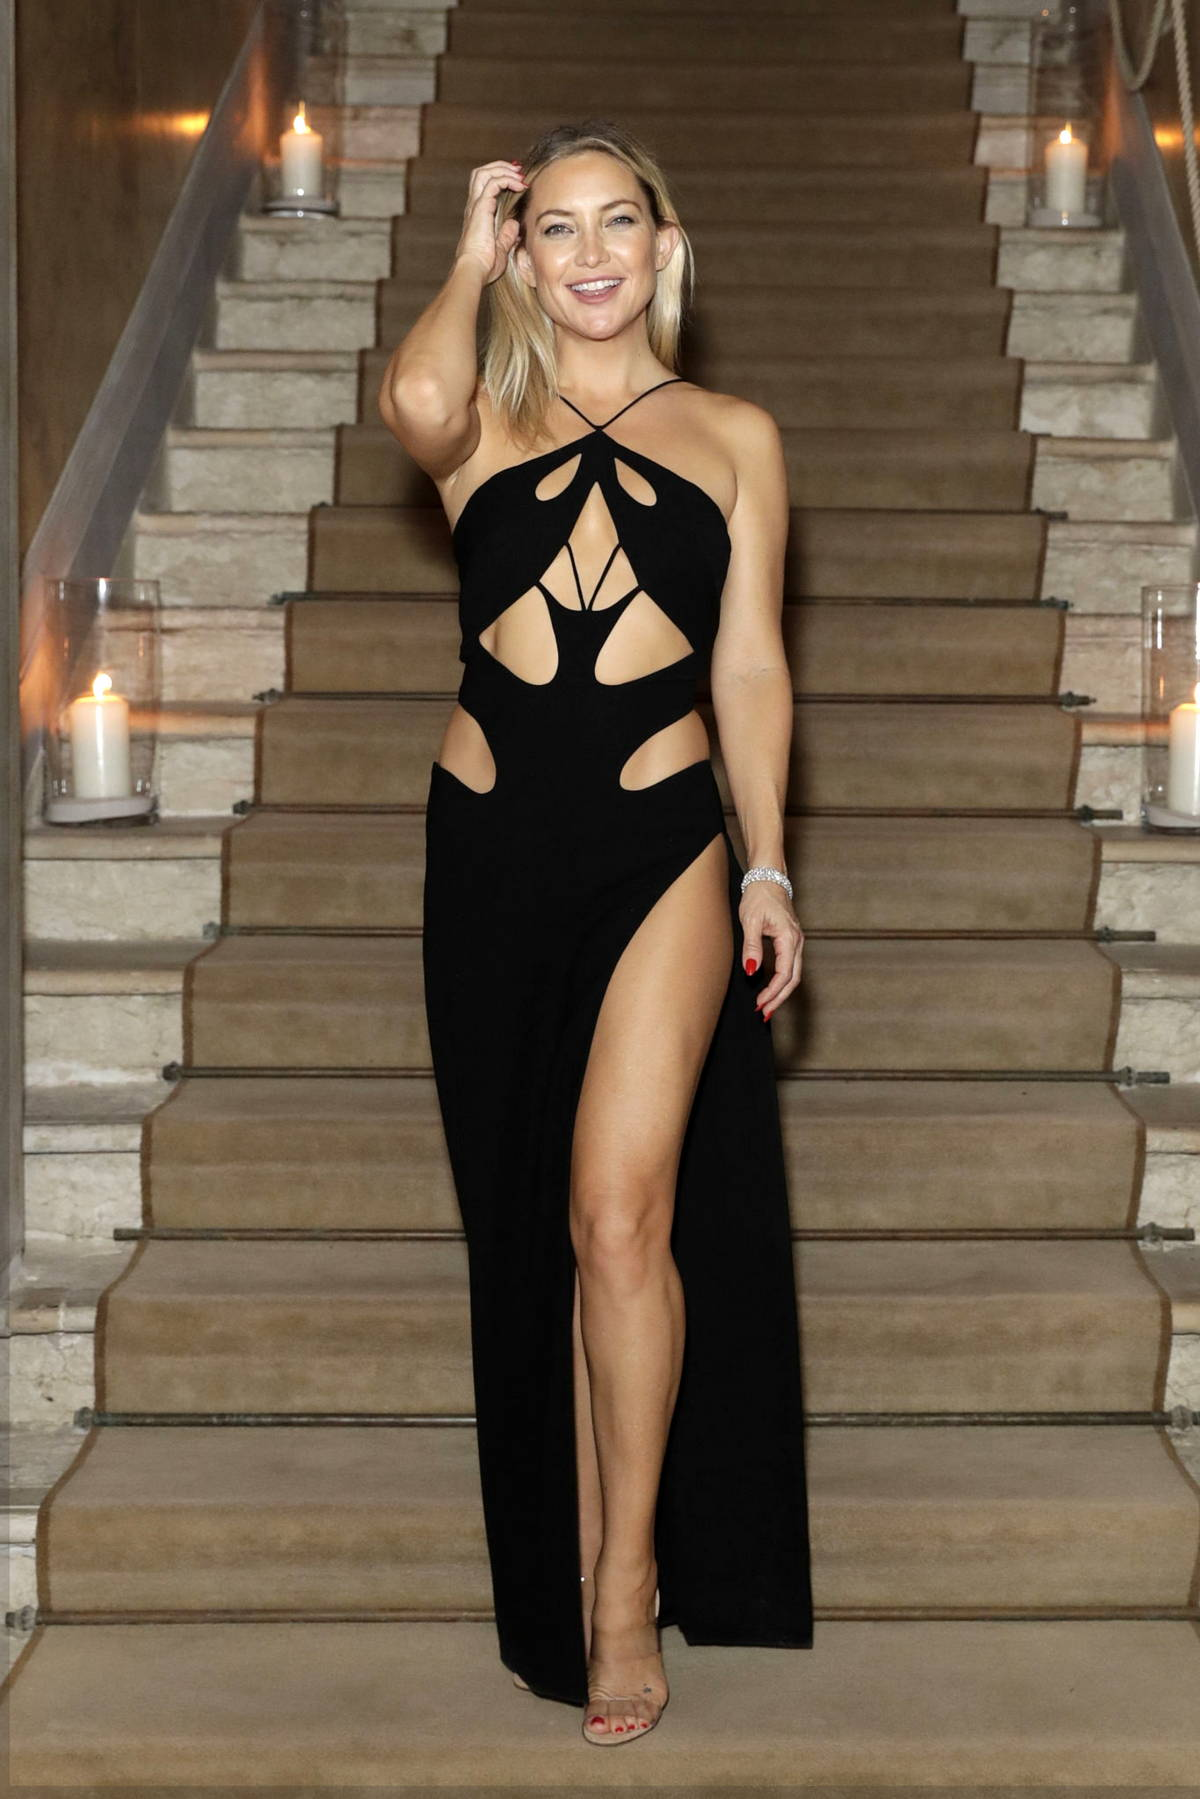 Kate Hudson attends the Celebration of Women in Cinema Gala during the 78th Venice Film Festival in Venice, Italy